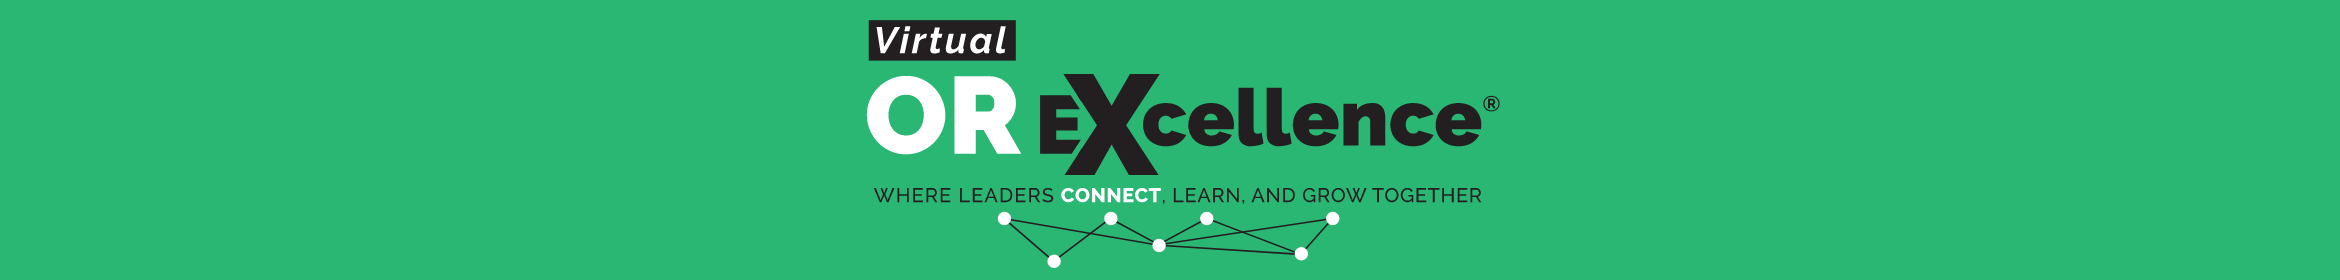 2021 OR Excellence Main banner